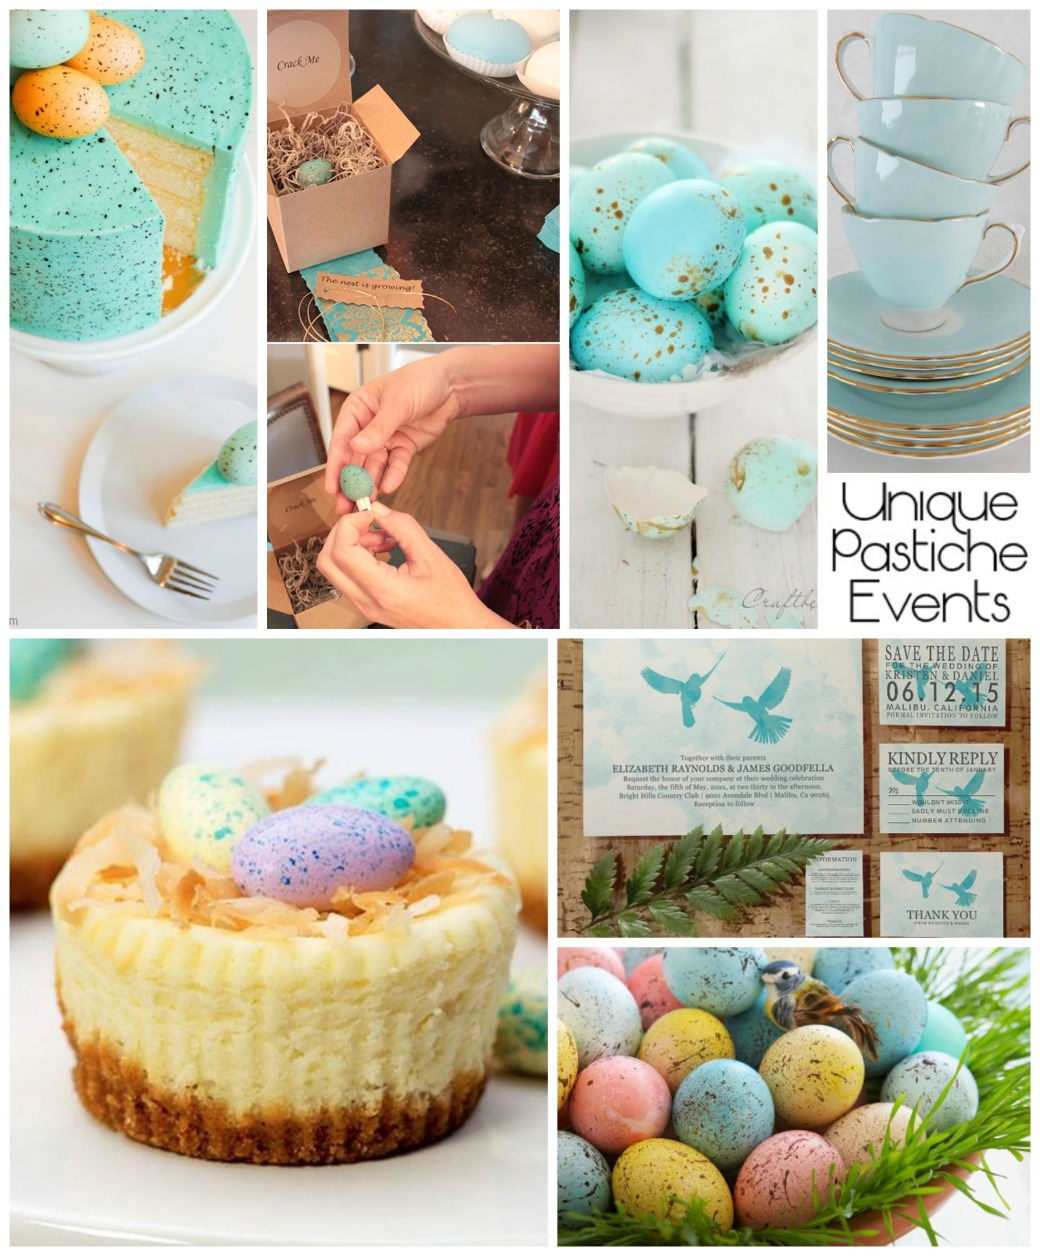 Speckled Blue Egg – Spring Engagement Party Ideas Here's the link to the full post: https://uniquepasticheevents.com/2015/03/25/speckled-blue-egg-spring-engagement-party-ideas/